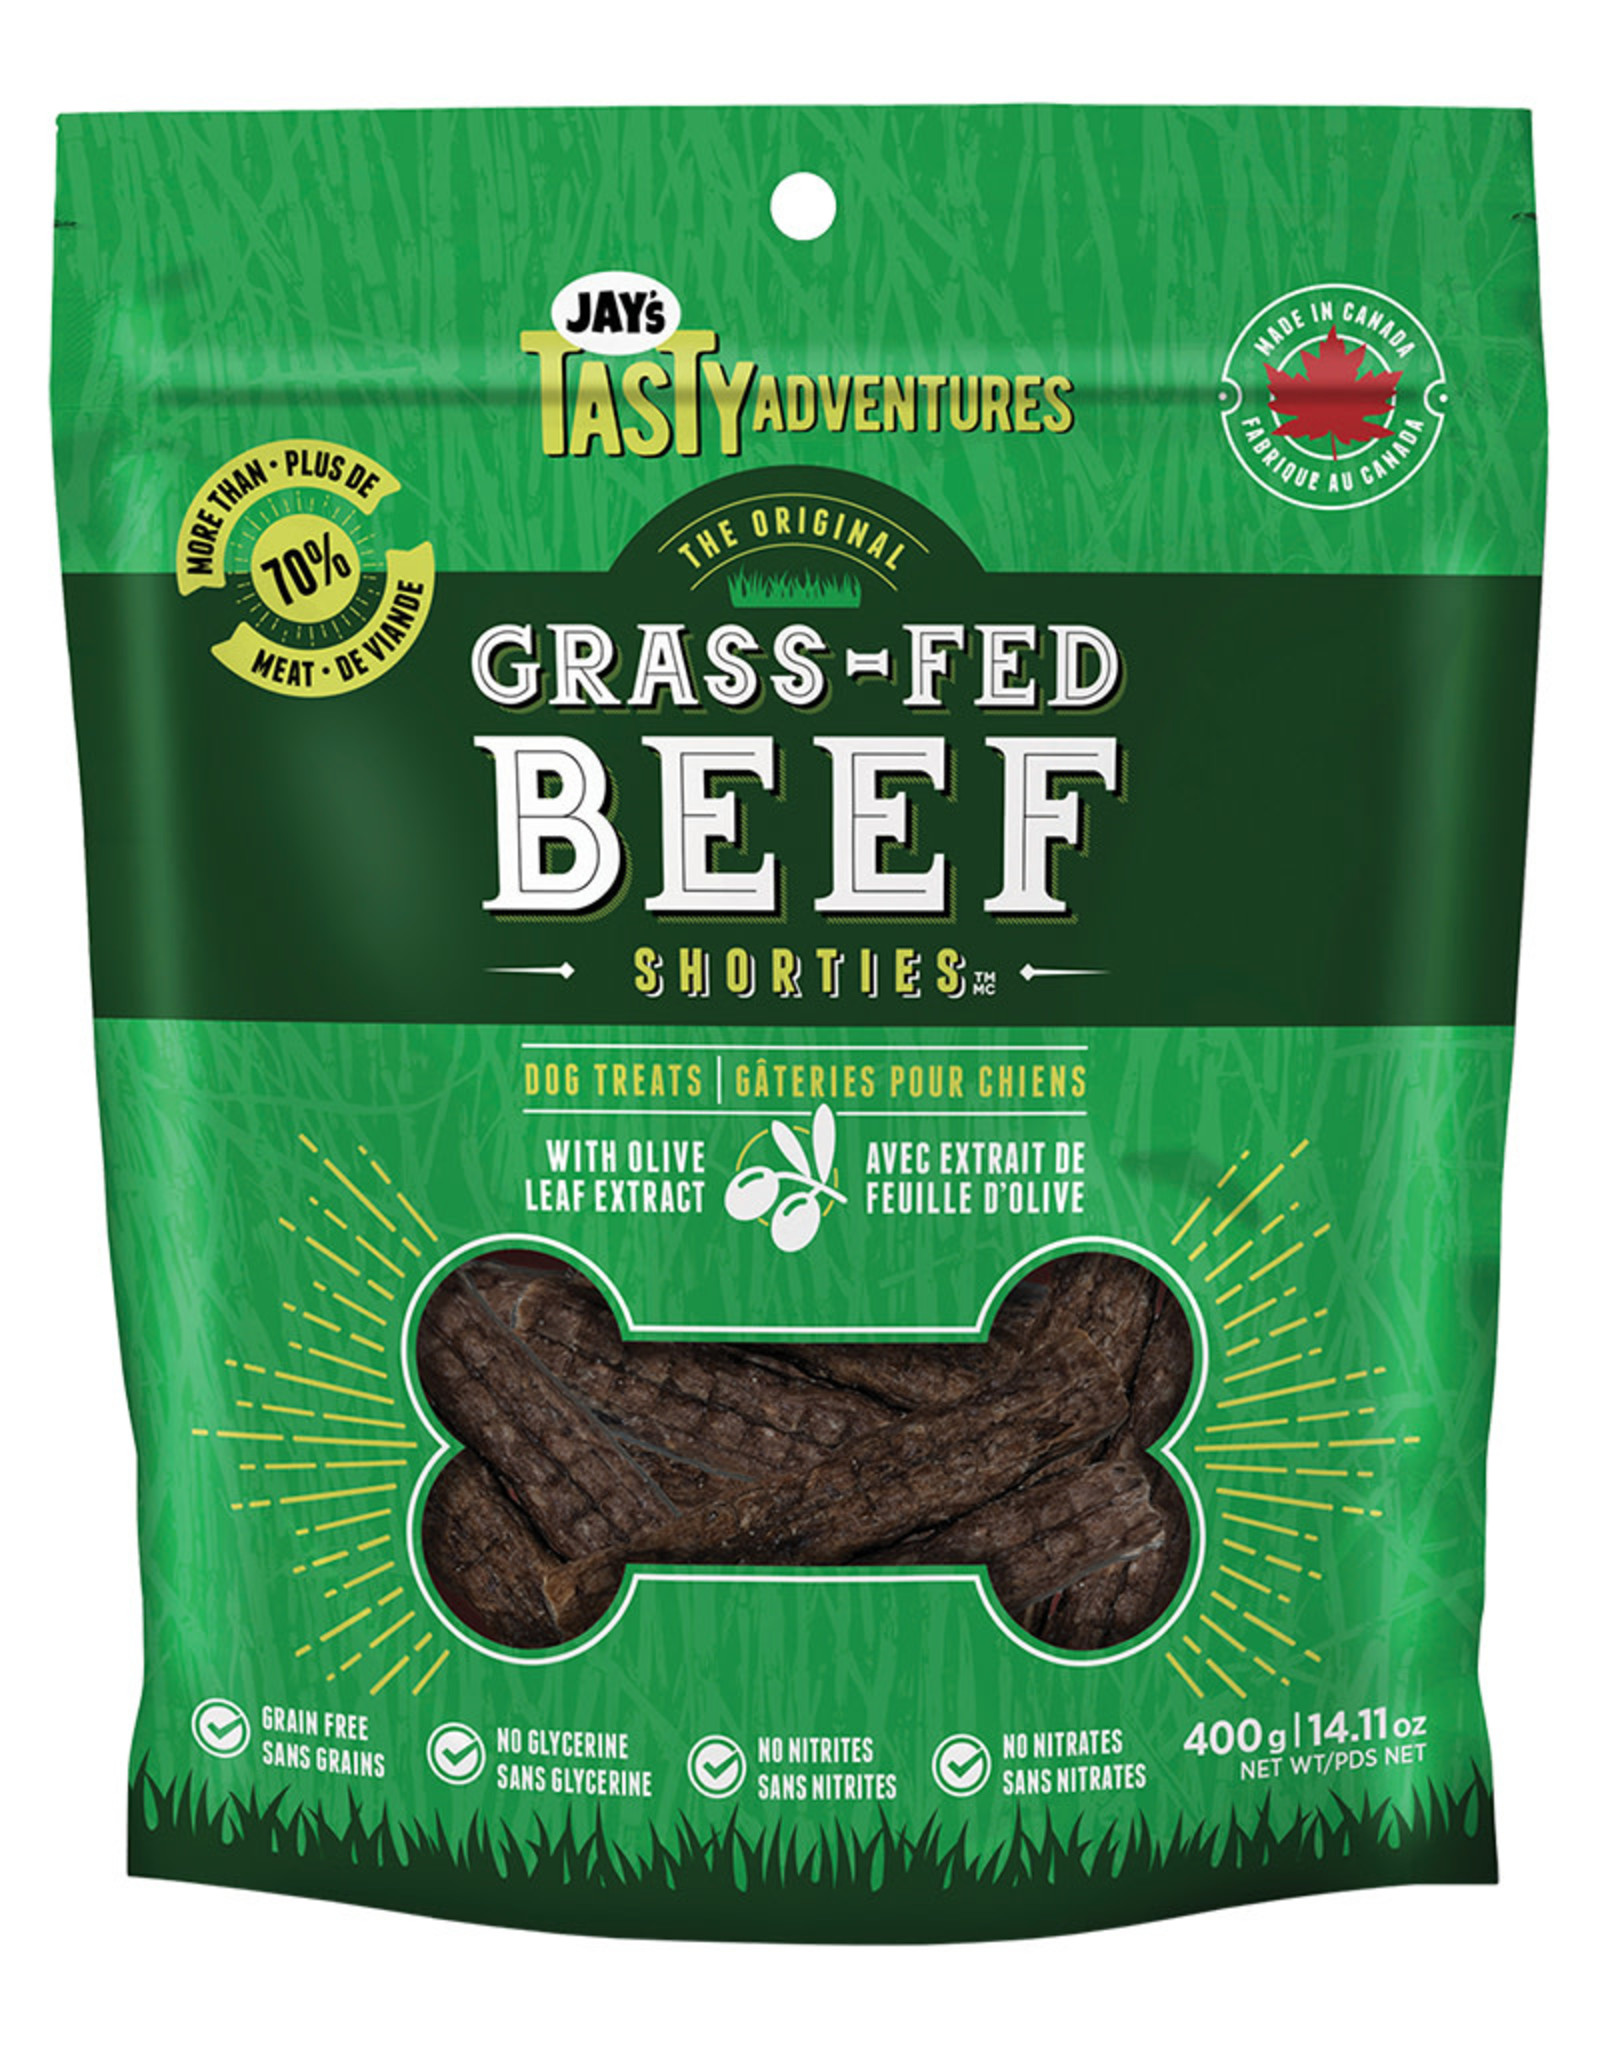 Jay's Grass-Fed Beef Shorties 400GM